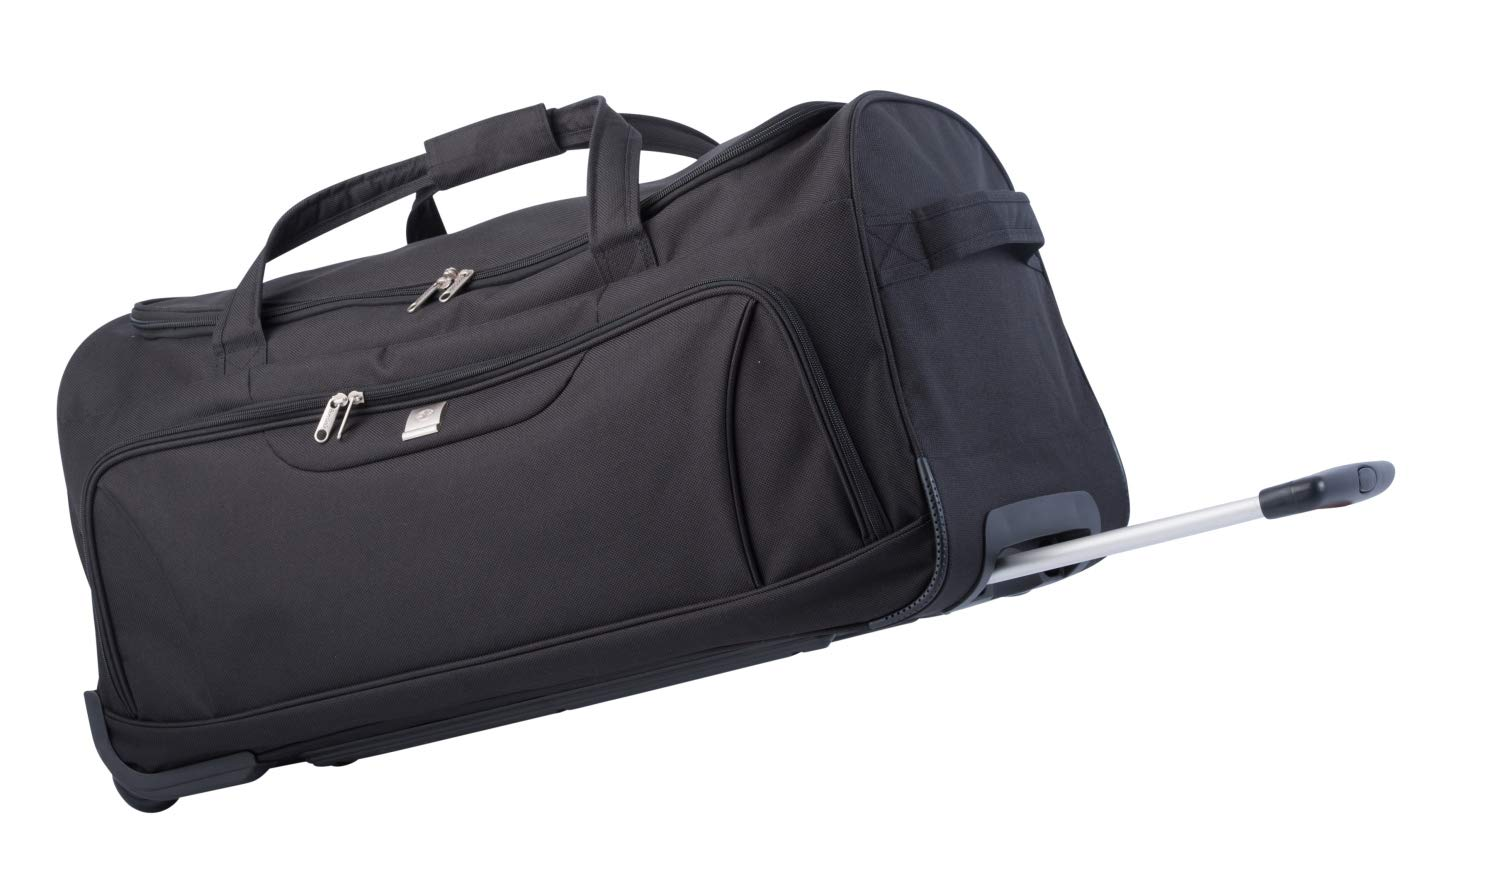 82 Litre Duffel Bag Wheely Travel Bag by Bon Goût, with Wheels and Telescopic Metal Frame and Pull Handle. Padded Main Carry Strap, Front Pocket Fully Lined Inside. Lightweight just 2.5g BG 2012 09